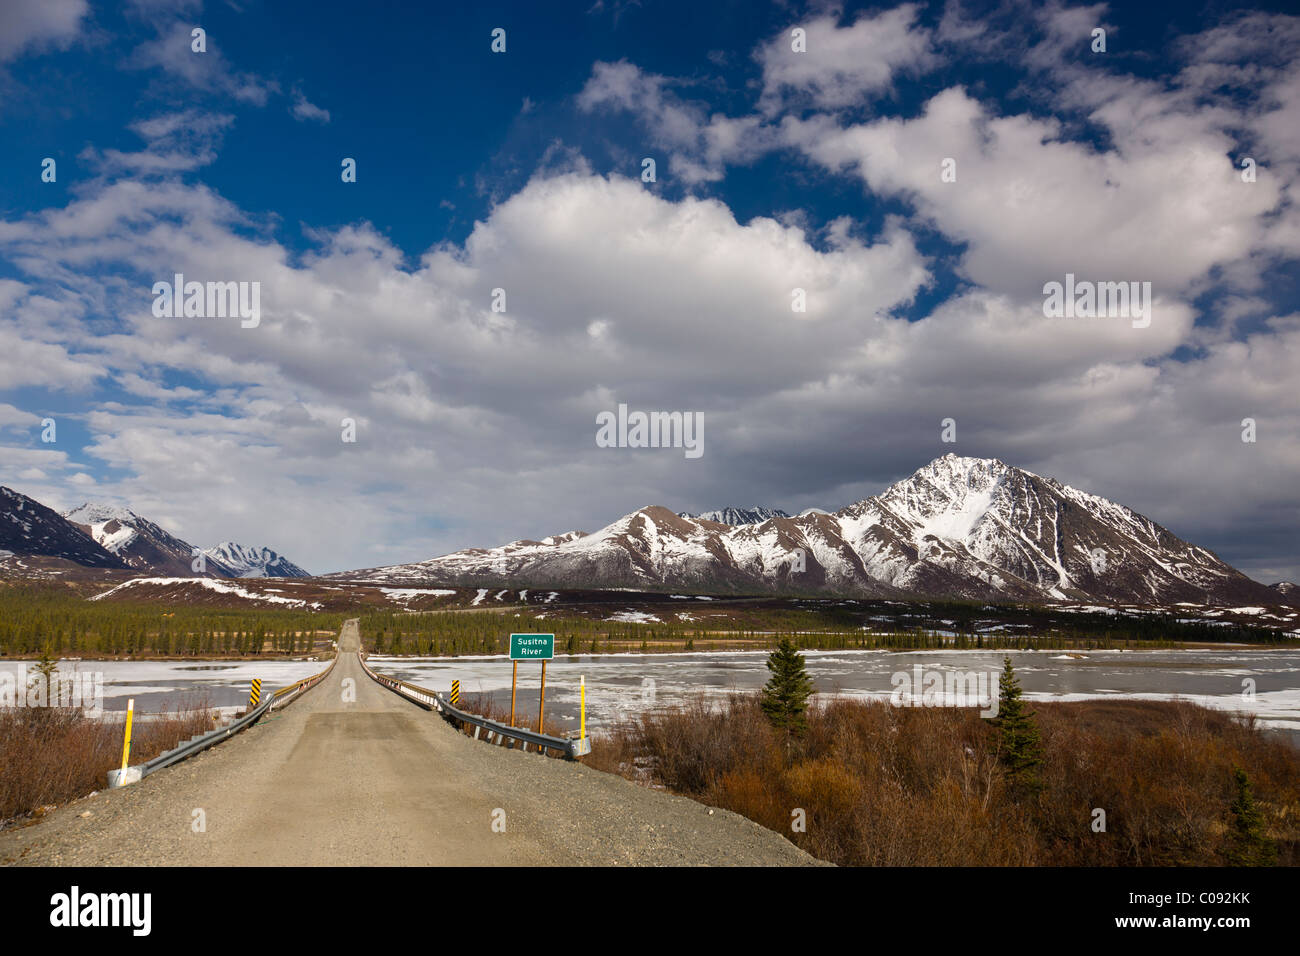 The Denali Highway bridge over the Susitna River with Clearwater Mountains in the background, Southcentral Alaska, - Stock Image